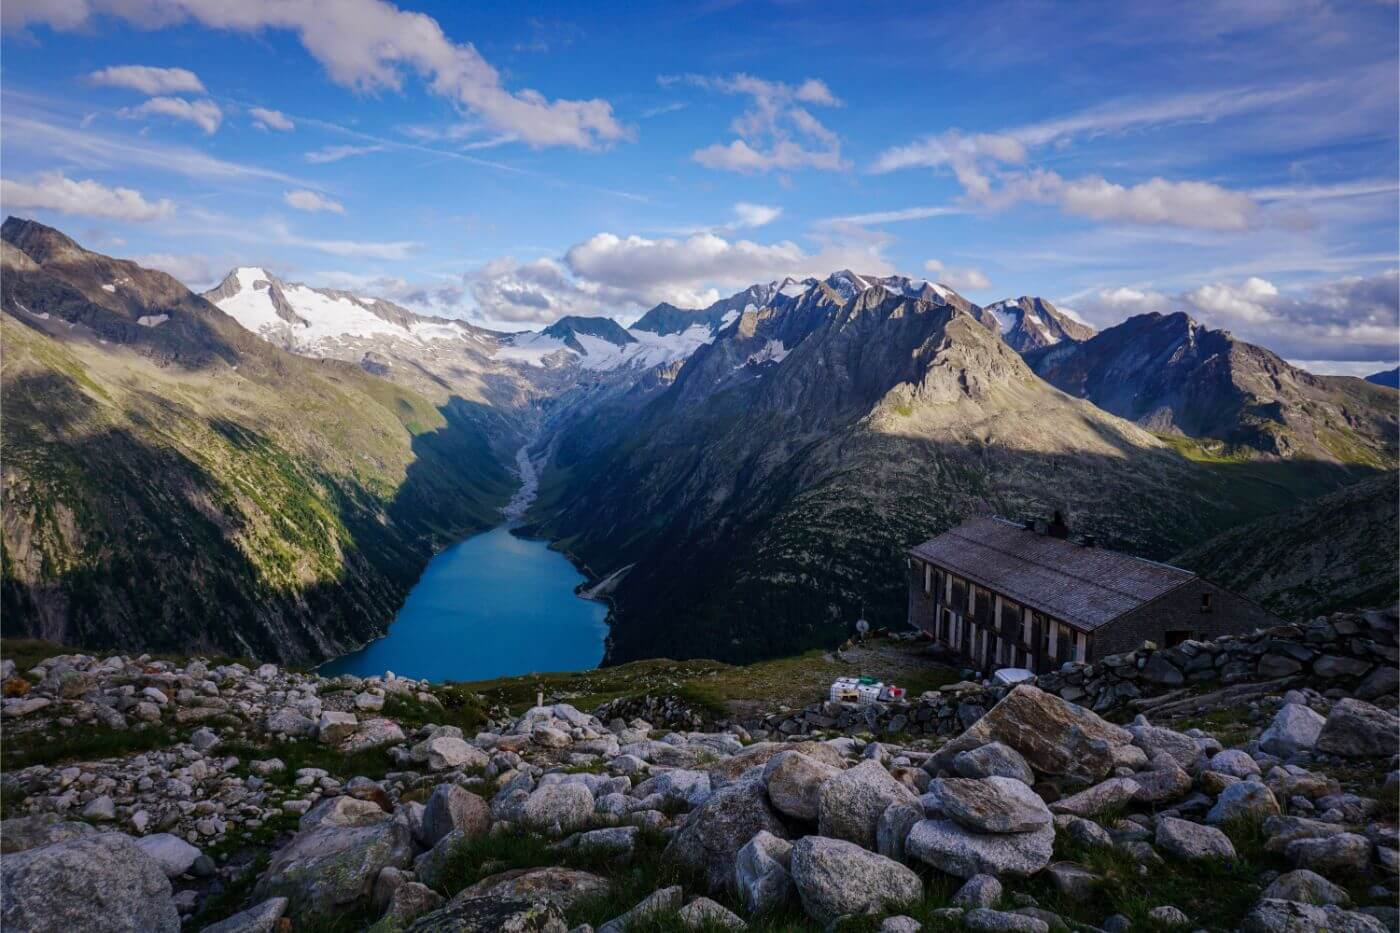 Olpererhütte - mountain refuge along the Berlin High Trail, Zillertal Alps, Austria